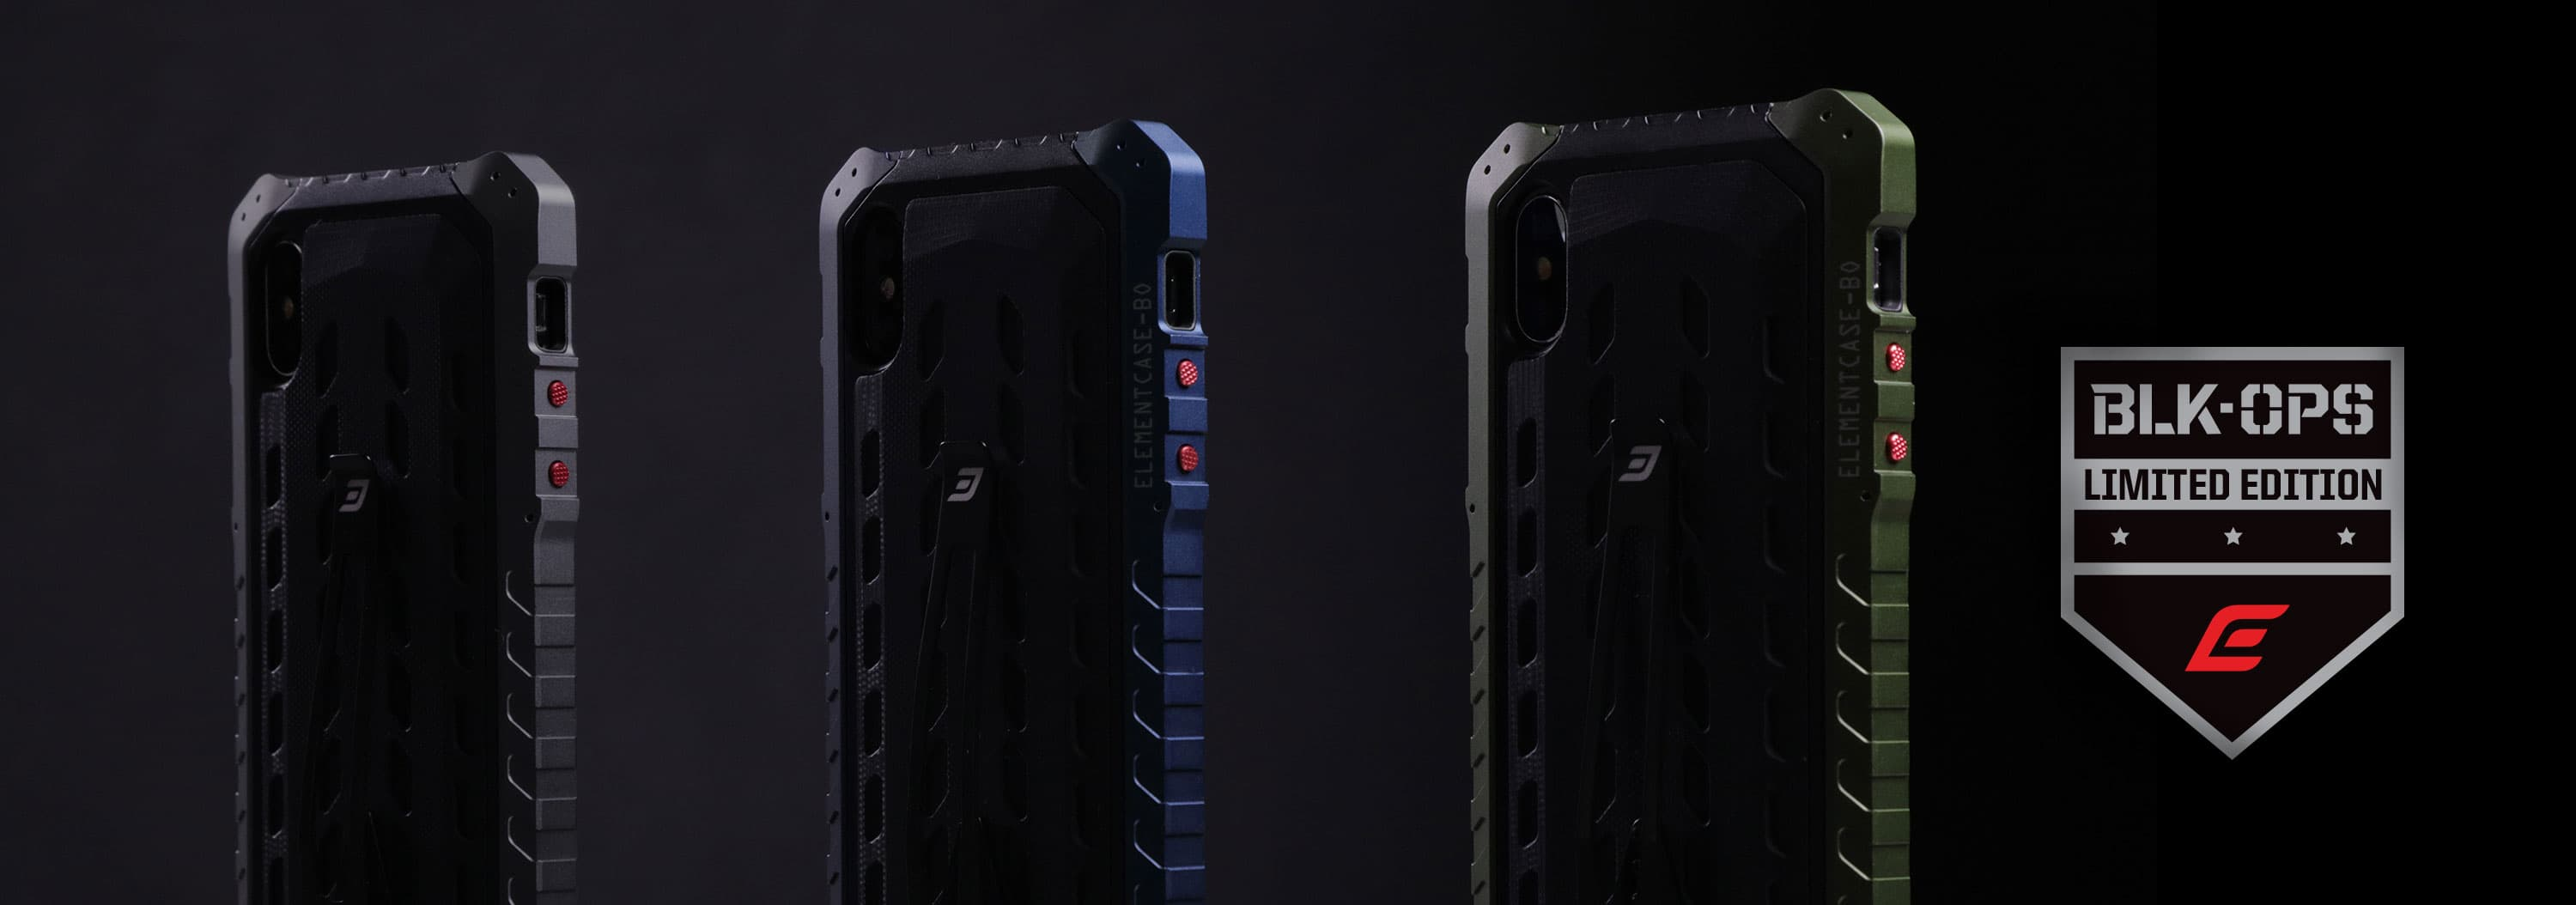 Elementcase Blackops Limited Edition 10